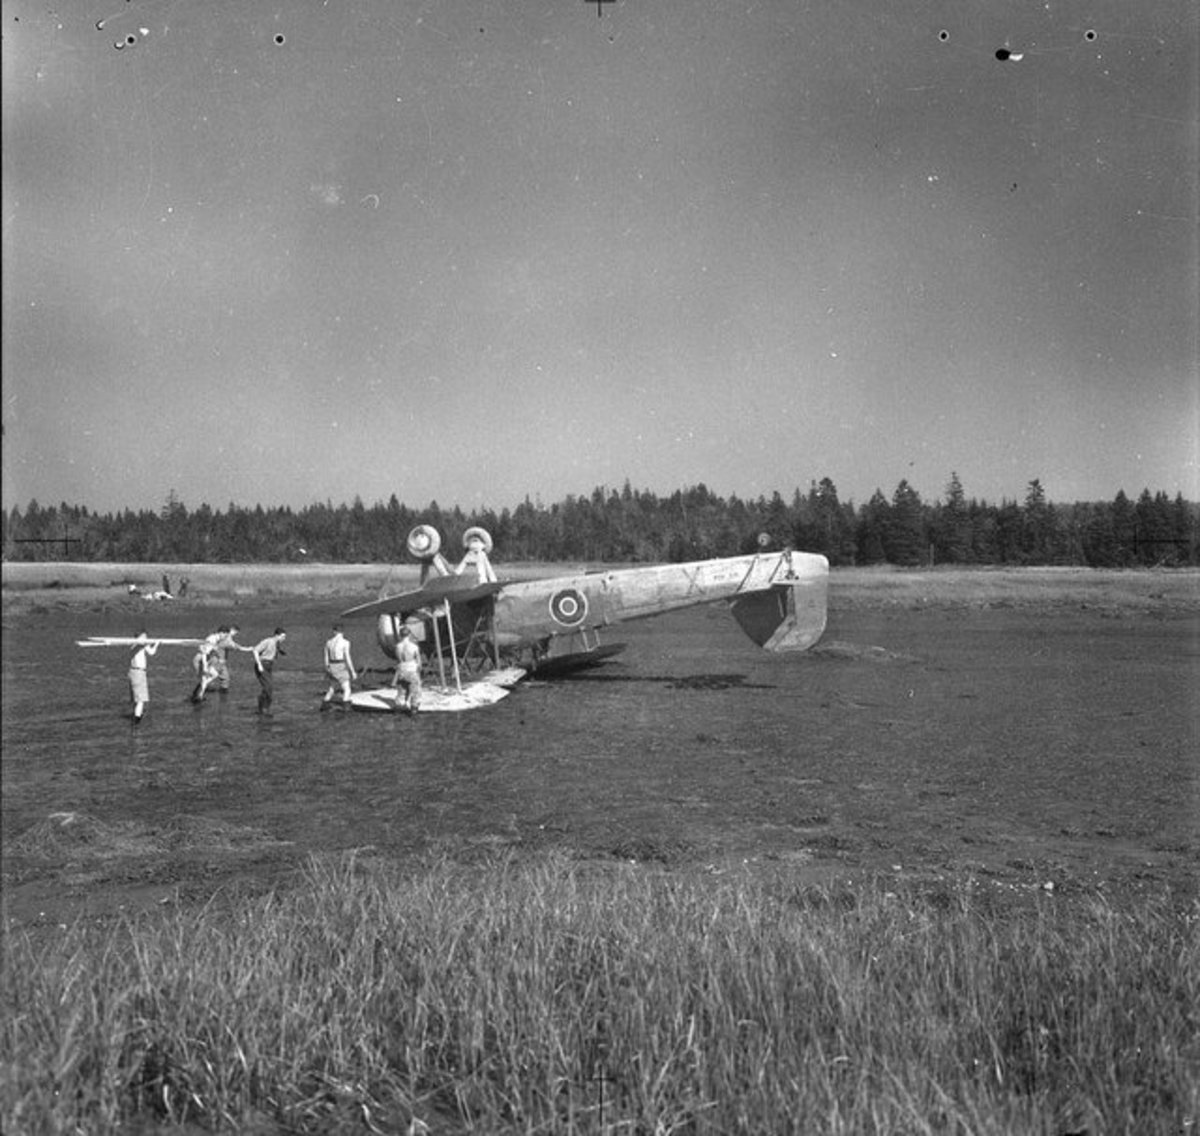 Wreckage of Fairey Swordfish aircraft HS404, the Naval Air Gunnery School, Yarmouth, Nova Scotia, 1943